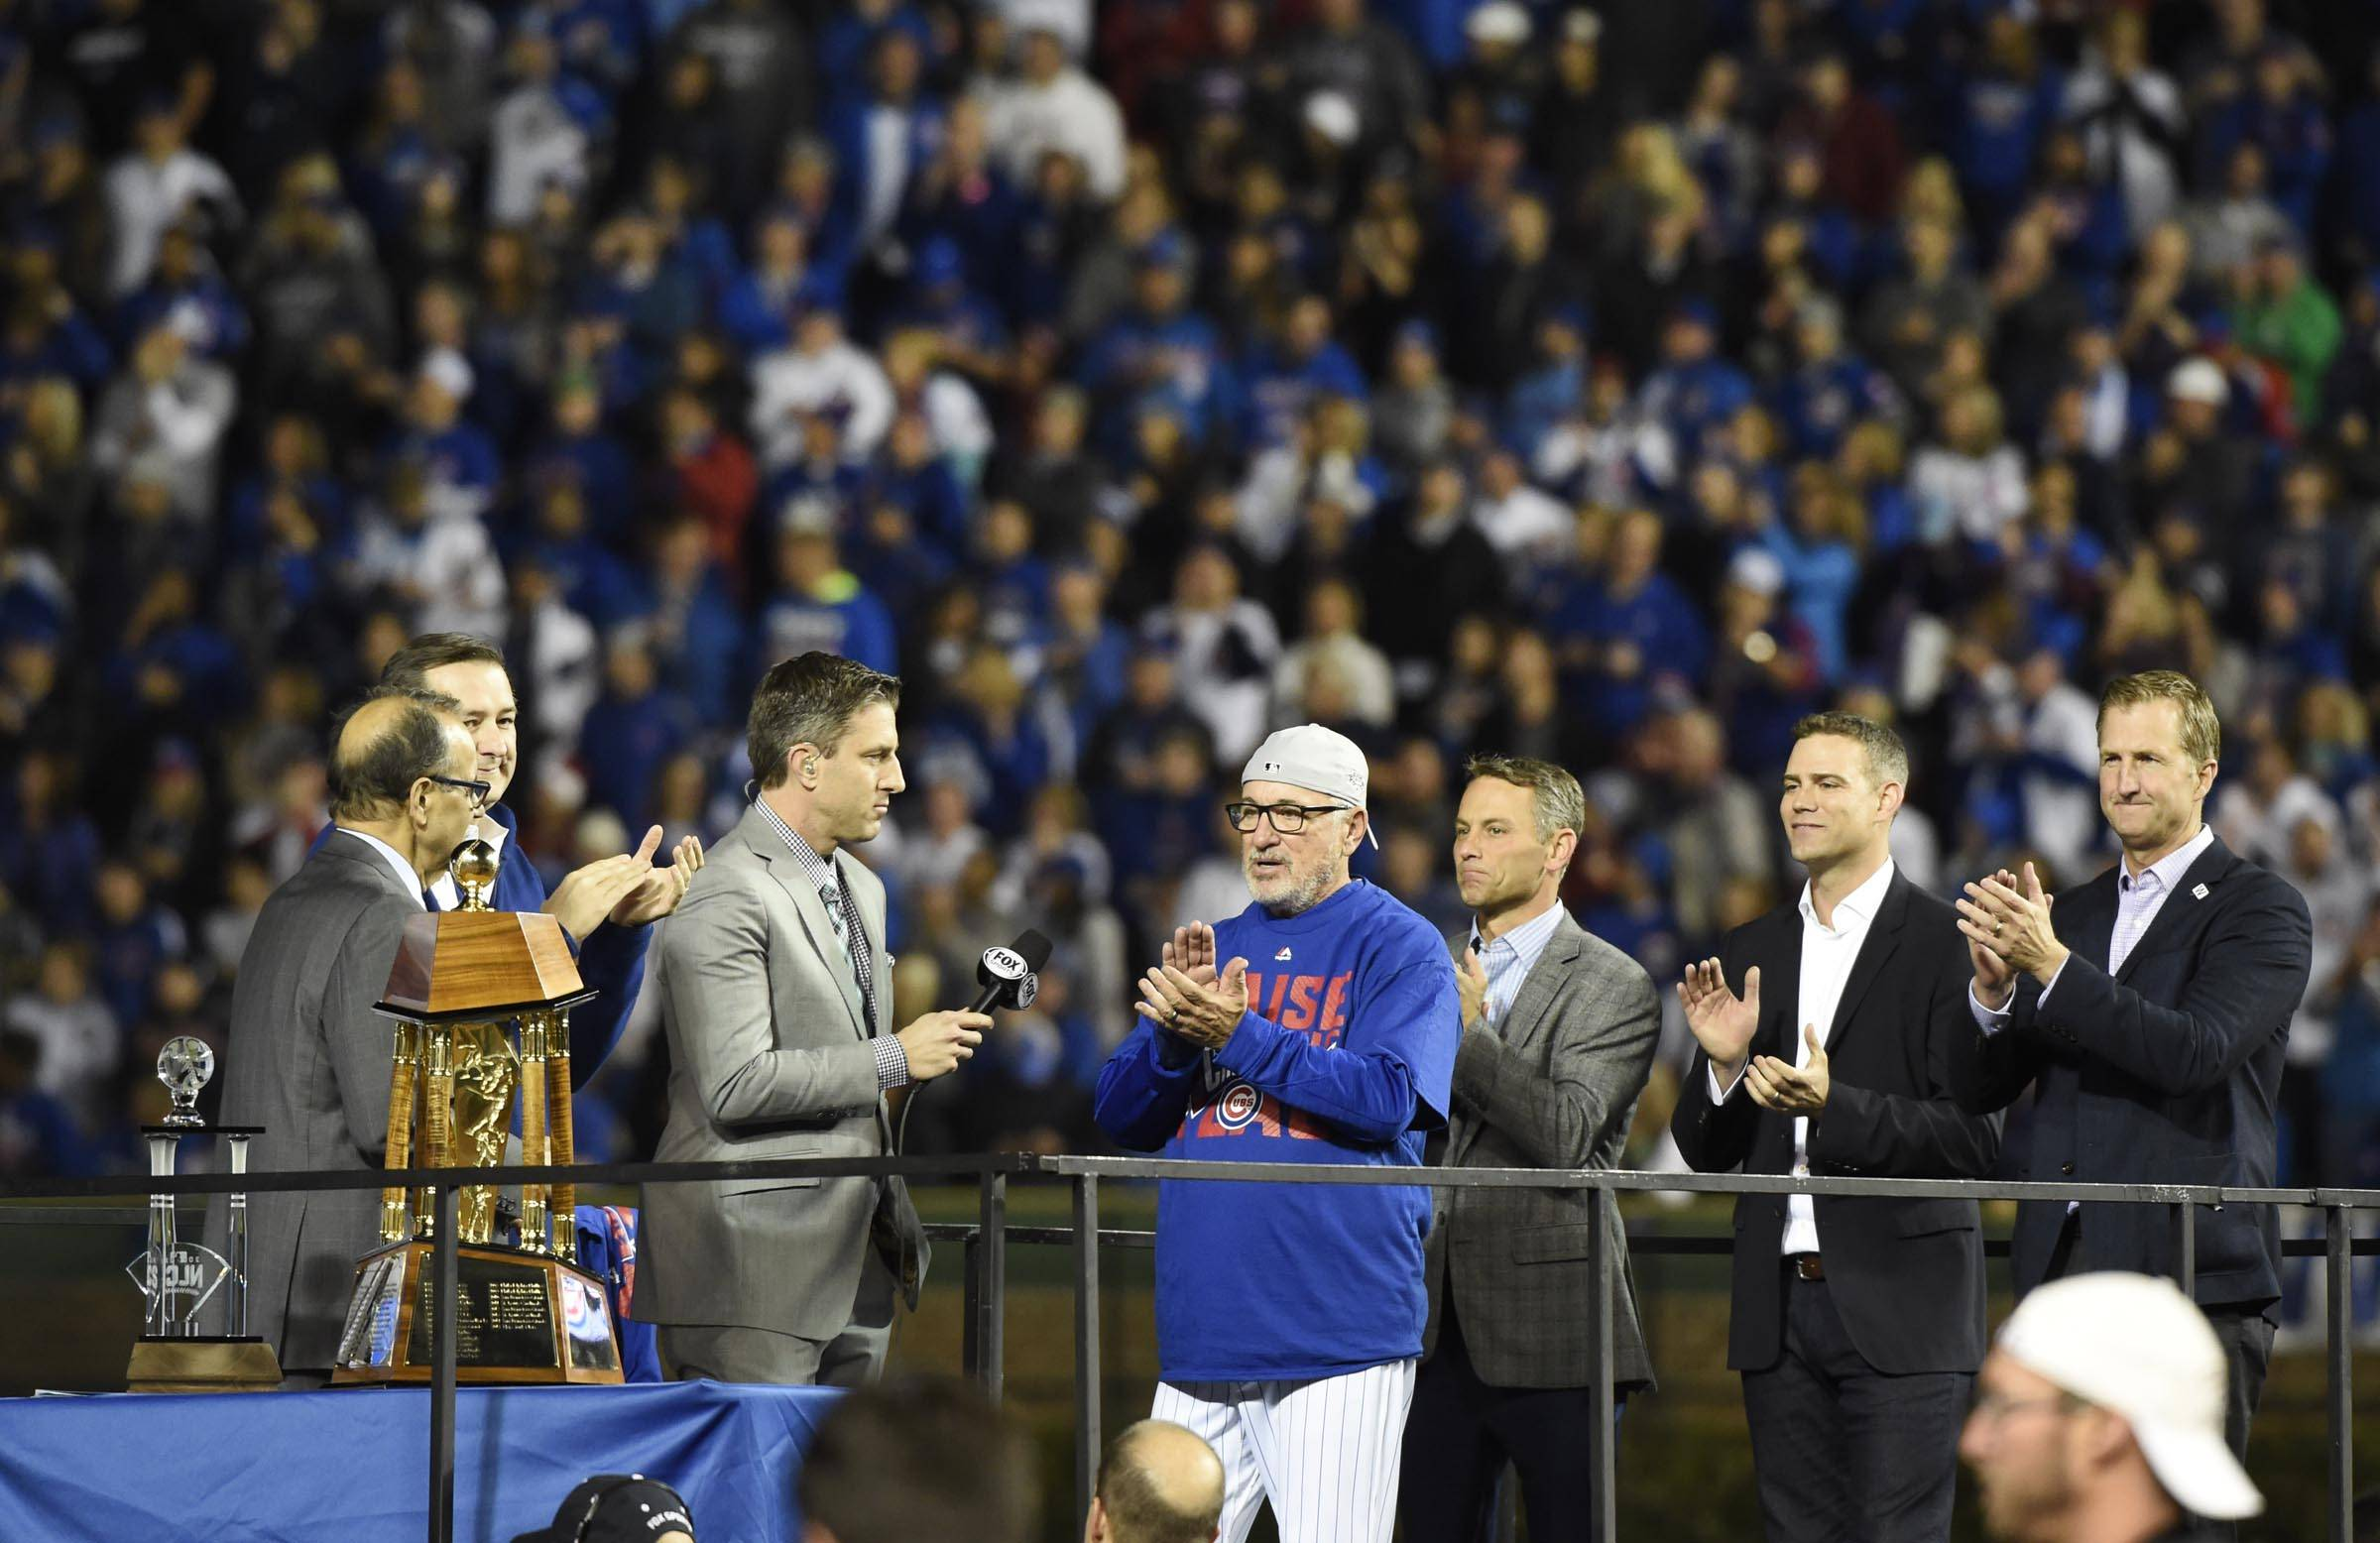 Imrem: Imagine what else Theo Epstein could do beyond baseball